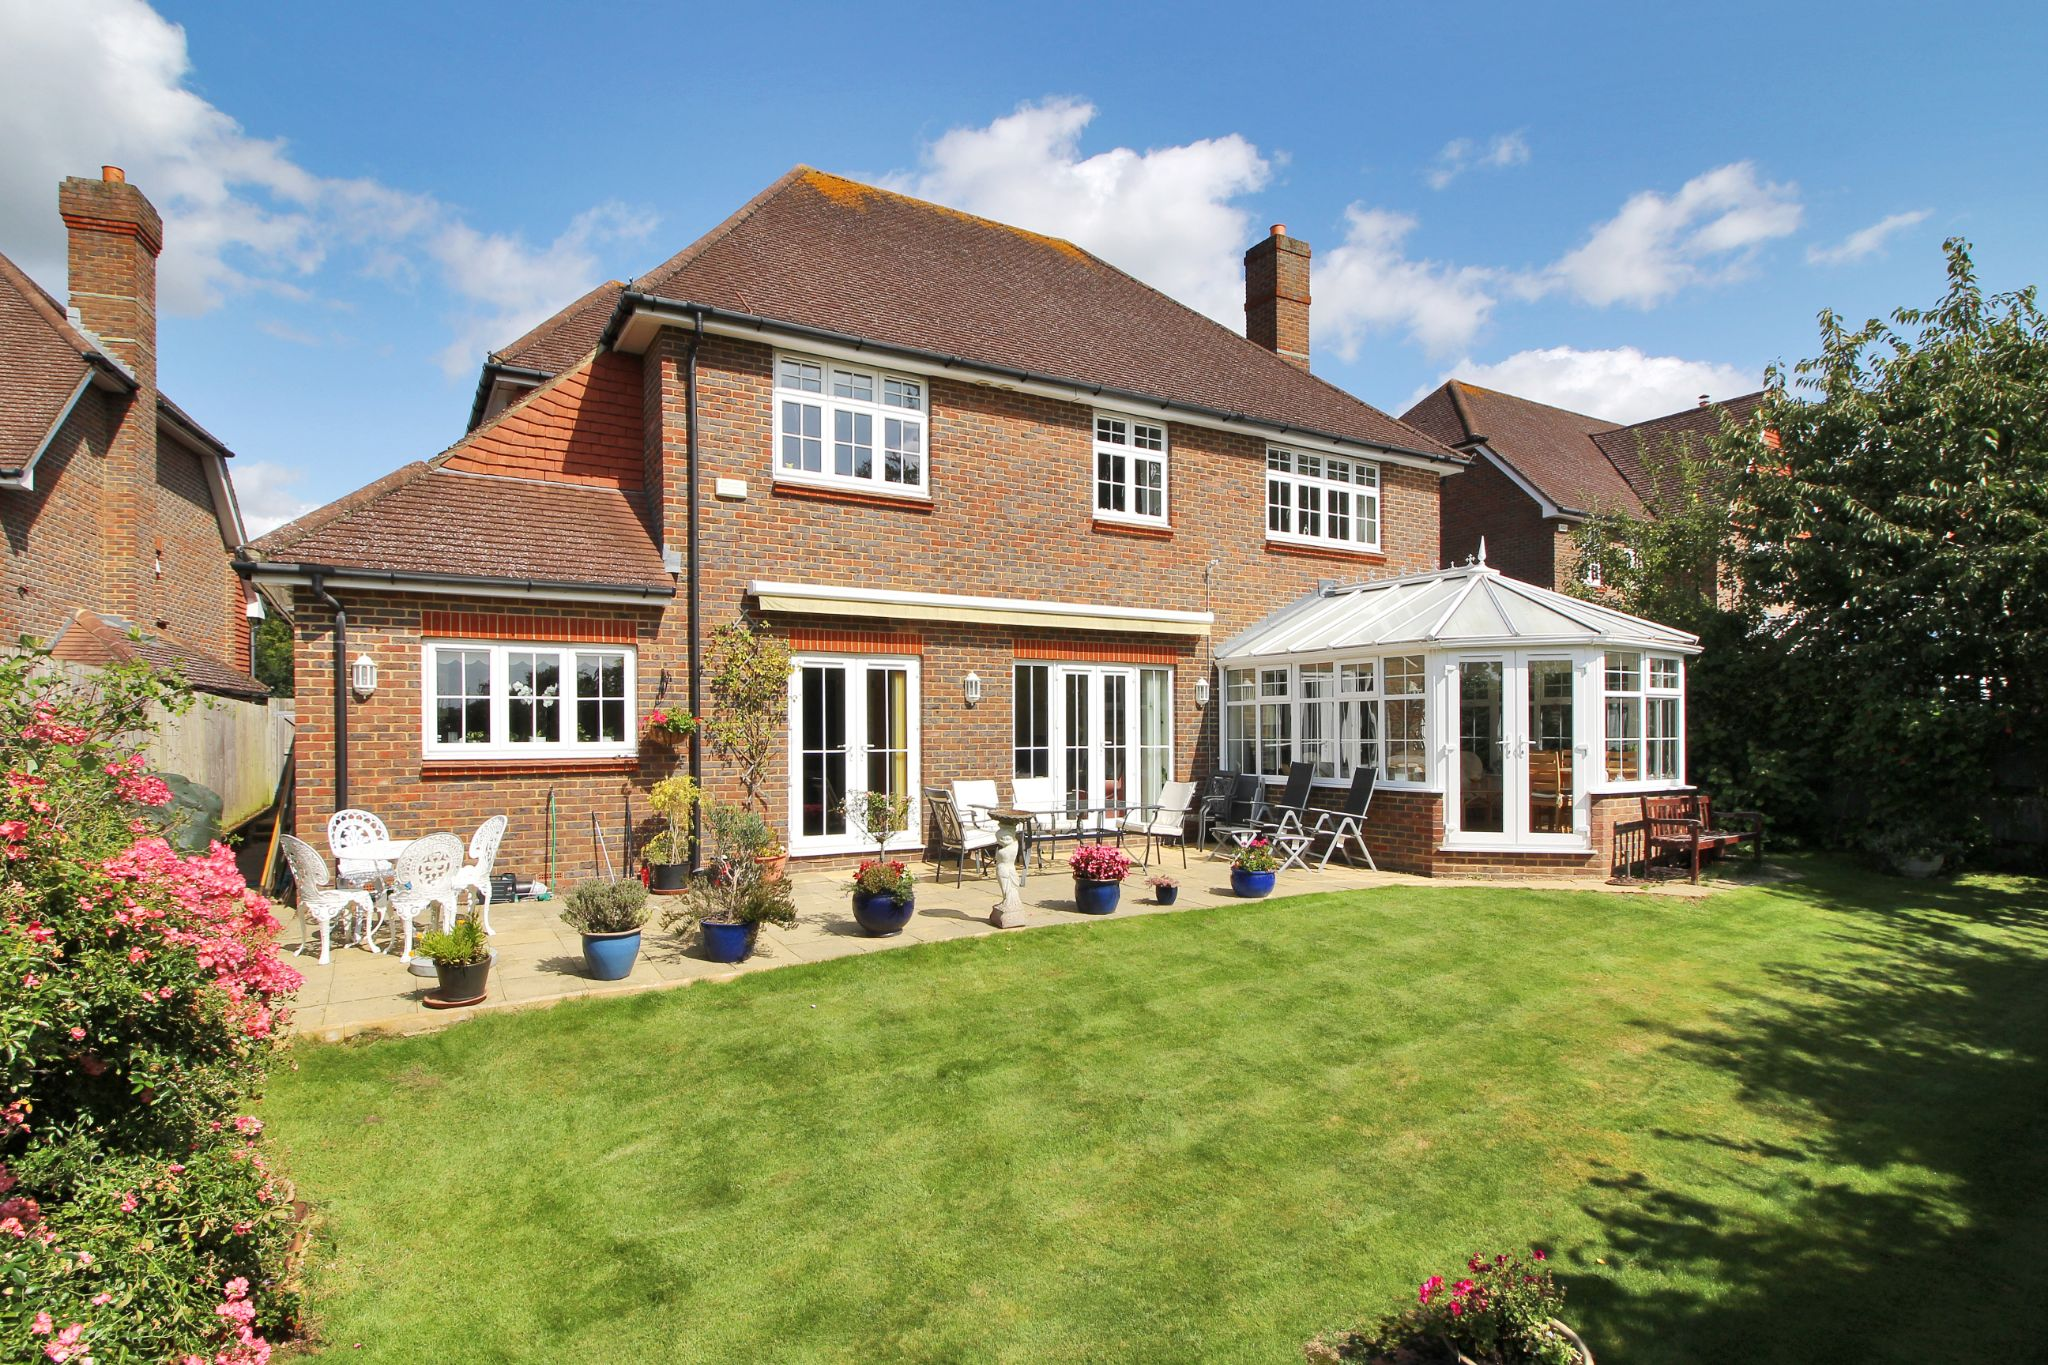 5 bedroom detached house Sold in Sevenoaks - Photograph 11